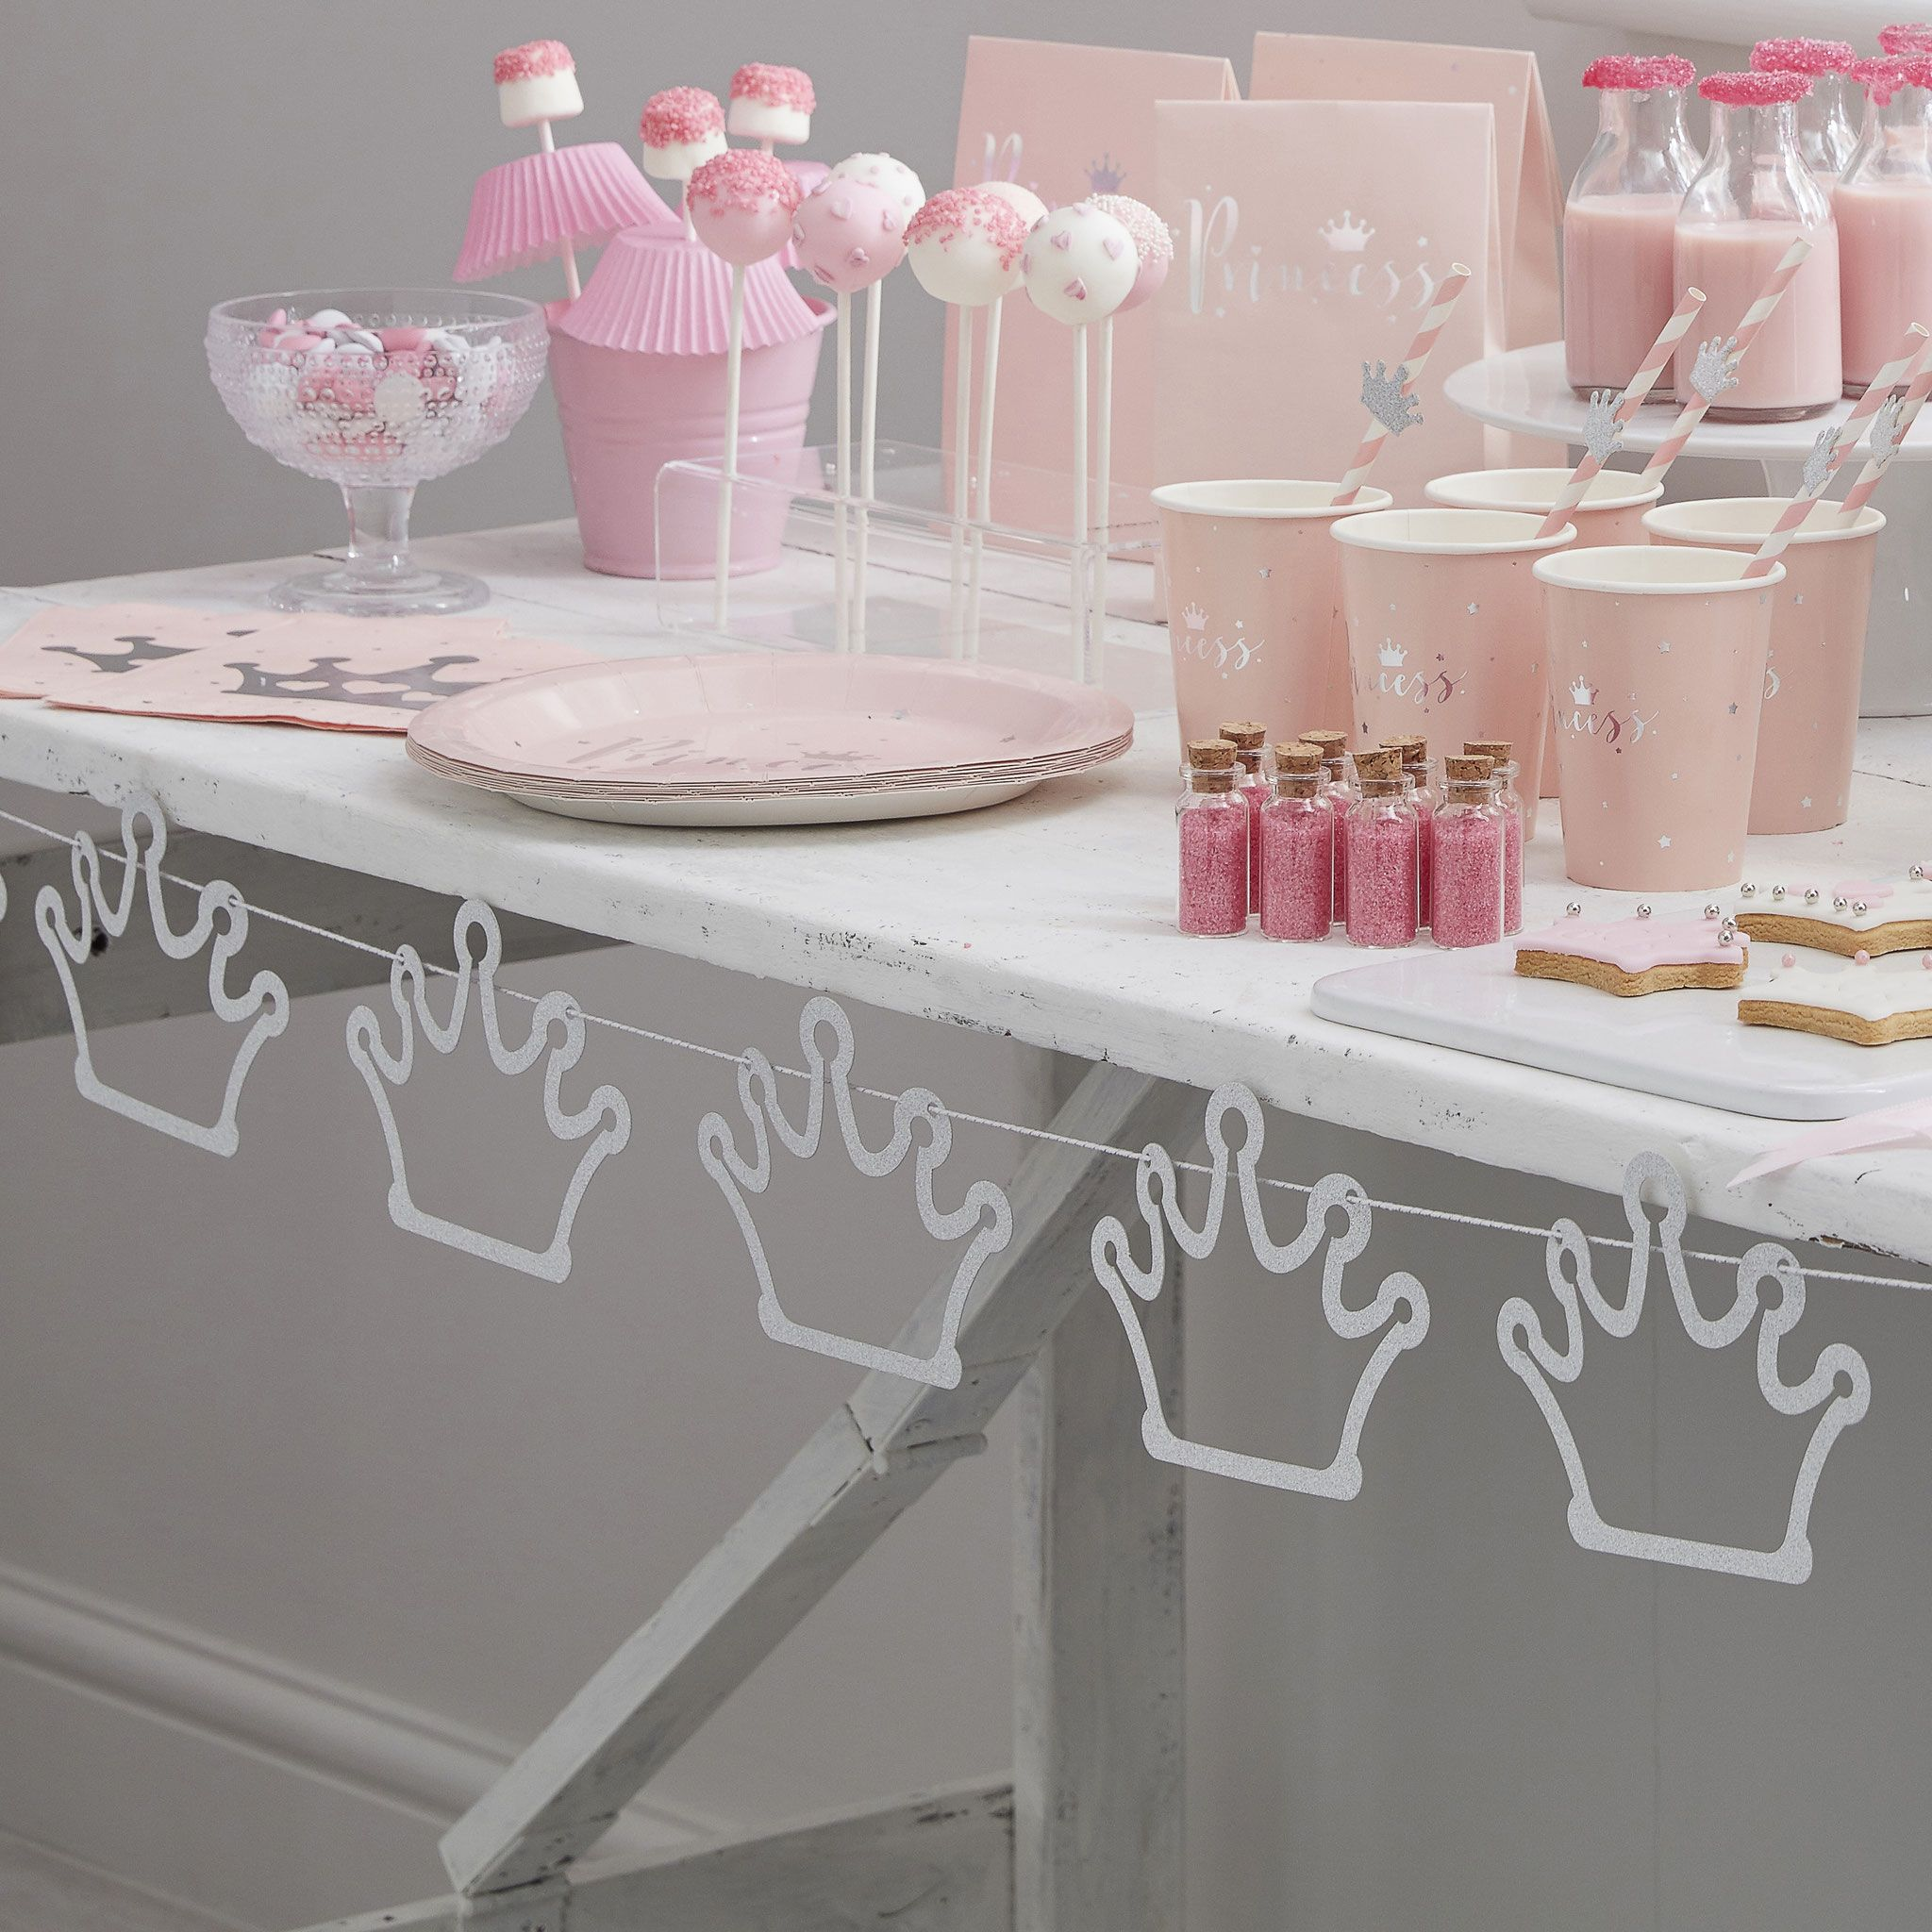 Décoration anniversaire fille princesse Princess party decor Anniversaire Princesse